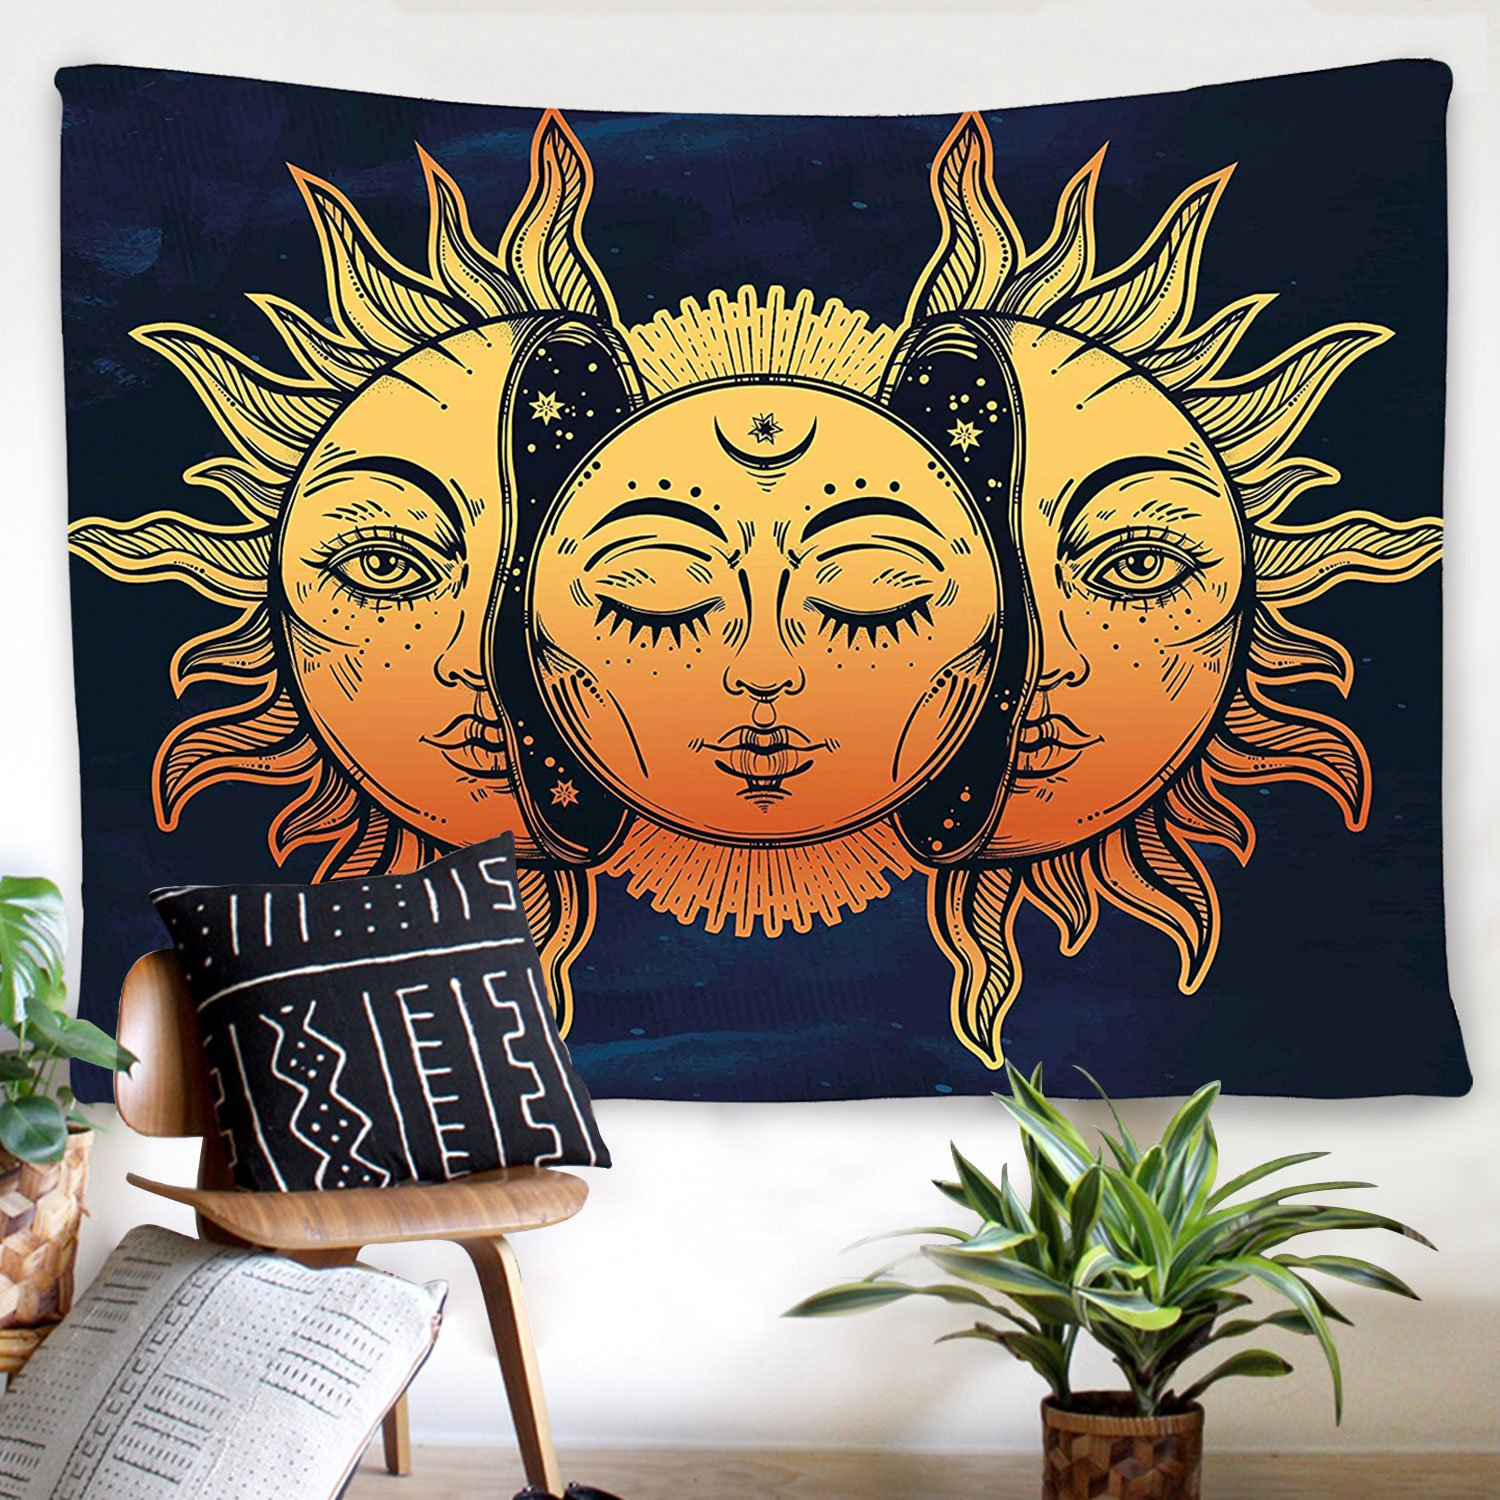 BLEUM CADE Psychedelic Tapestry Indian Moon Sun Many Fractal Faces Tapestry Celestial Energy Mystic Tapestries Wall Hanging Tapestry Bedroom Living Room Dorm (59.1''X82.7'', Face)